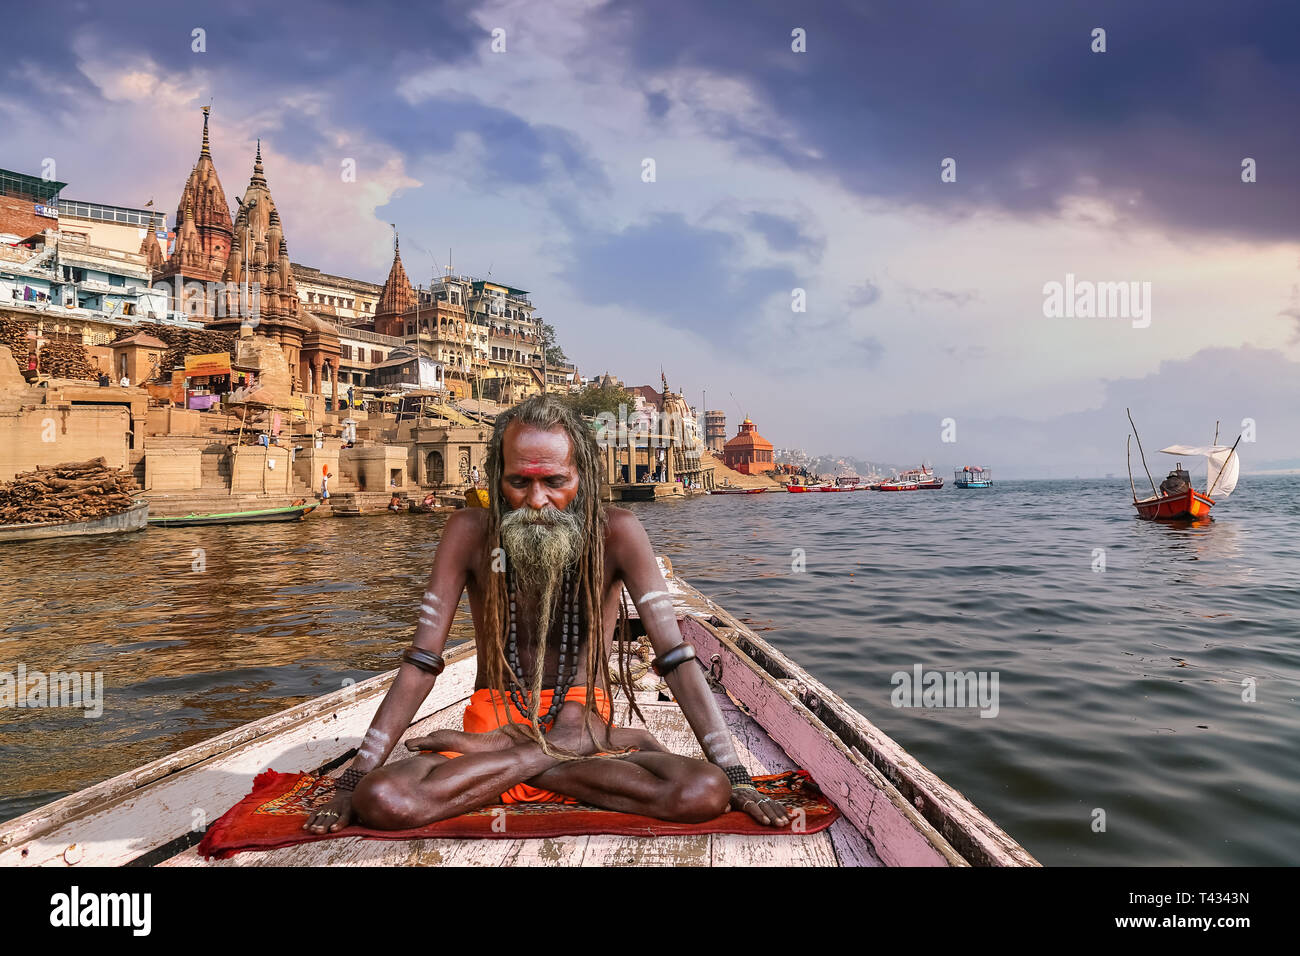 Sadhu baba in meditation posture on a wooden boat on river Ganges overlooking the Varanasi city at sunset - Stock Image